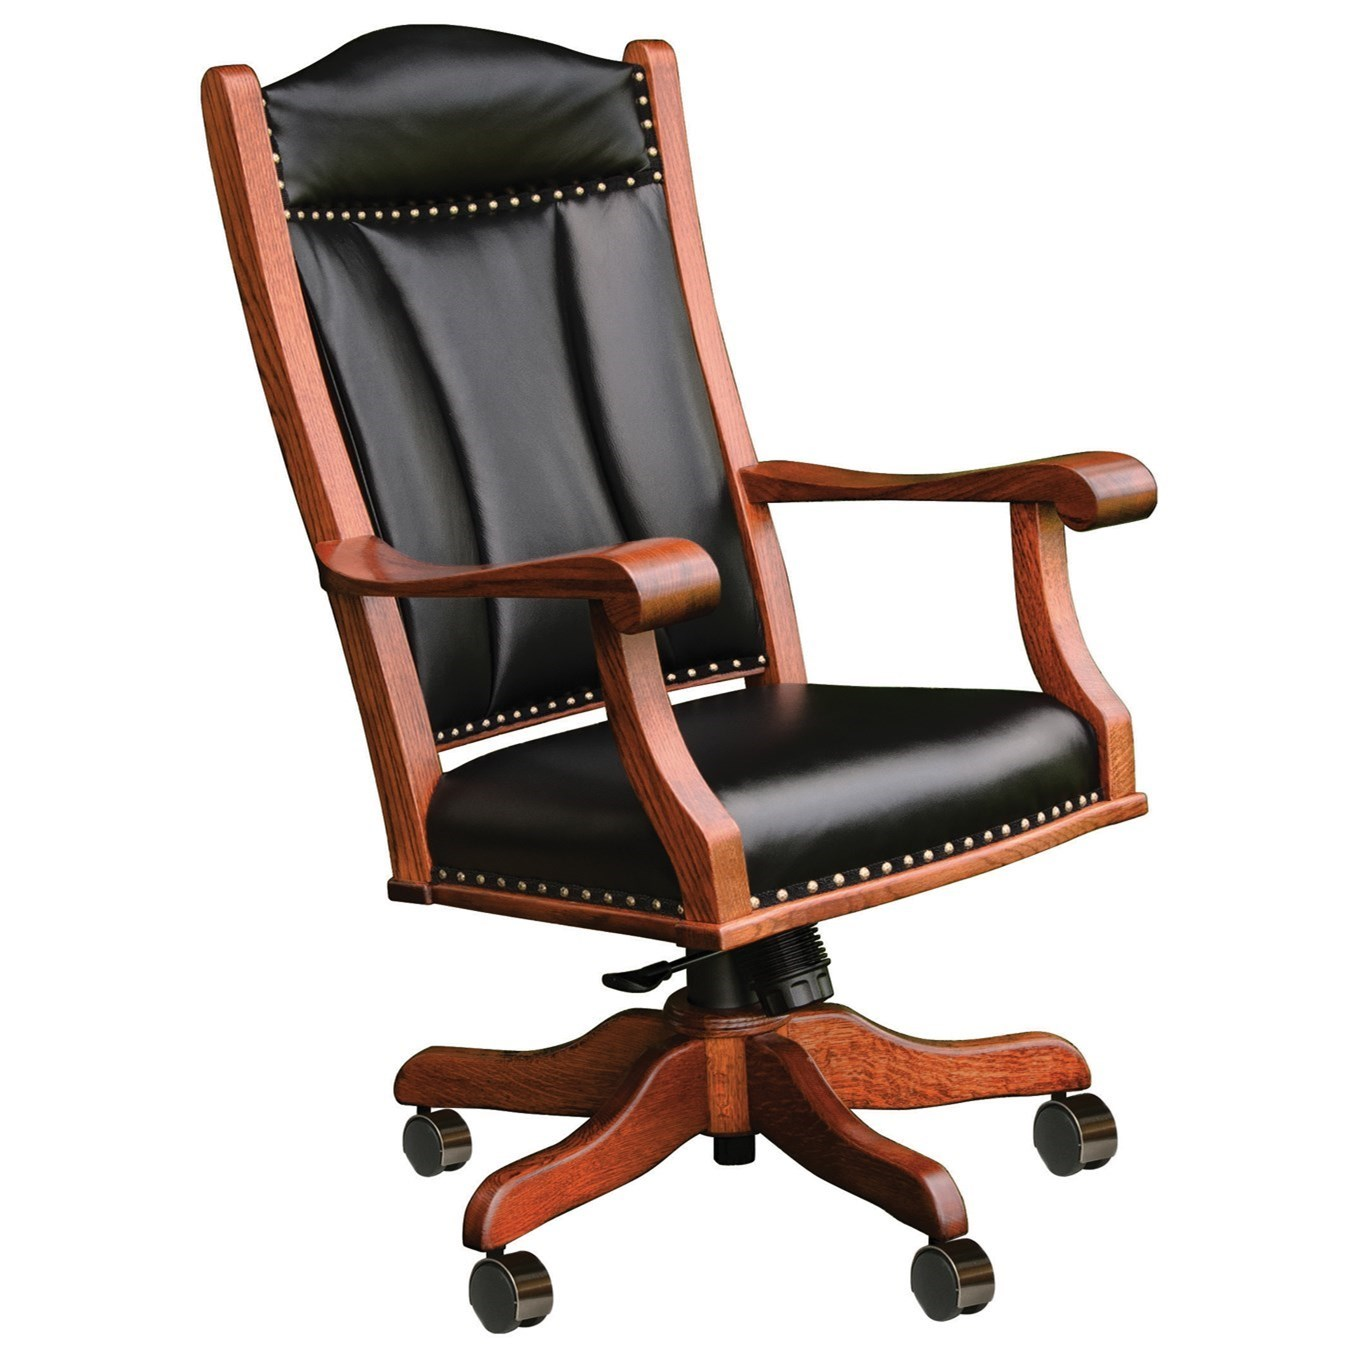 Deck Chairs Office Chair by Buckeye Rockers at Saugerties Furniture Mart